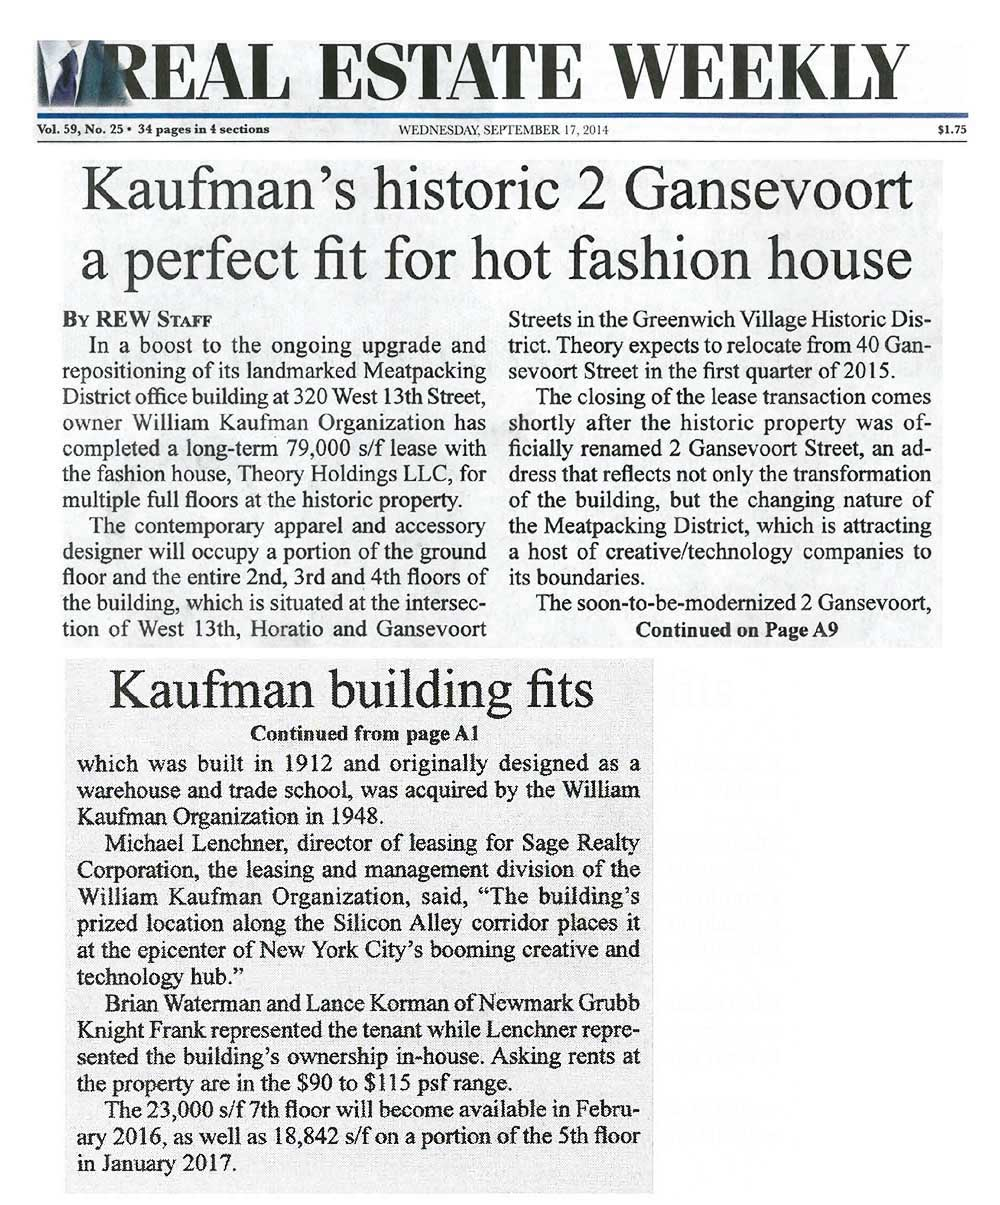 Real-Estate-Weekly---Kaufman's-historic-2-Gansevoort-a-perfect-fit-for-hot-fashion-house---9.17.14